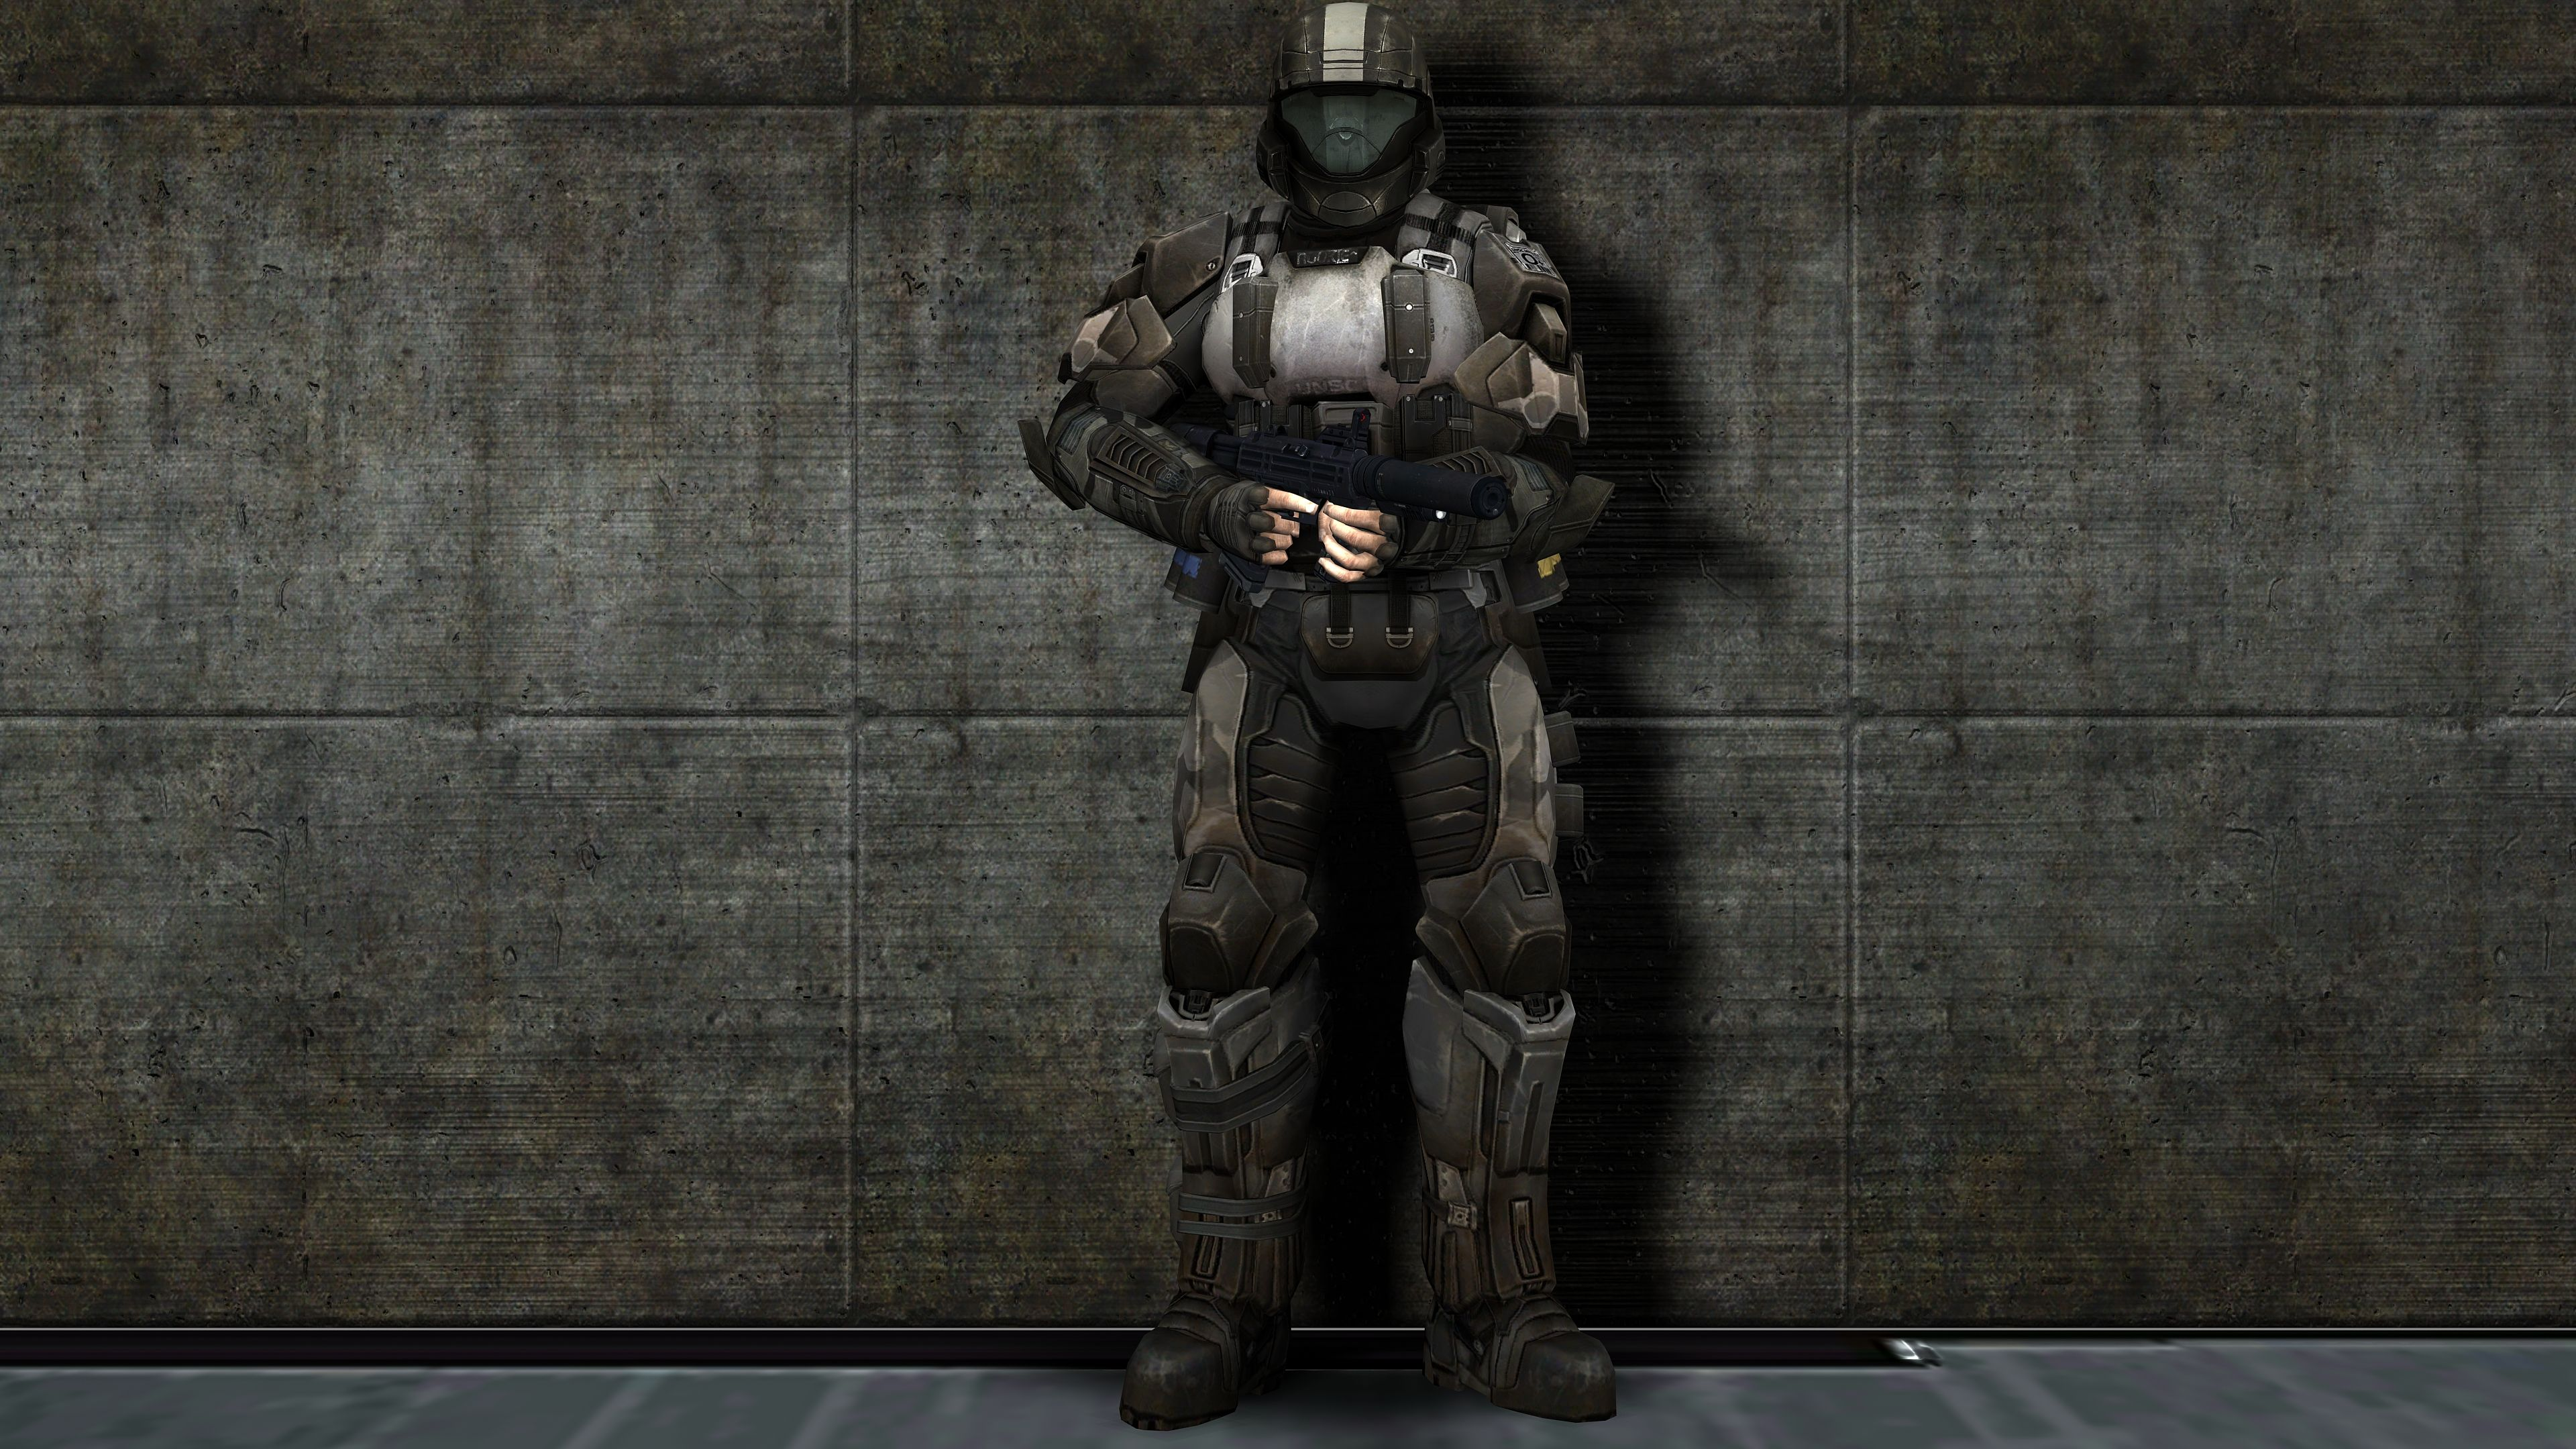 Halo Odst The Rookie - Imagez co